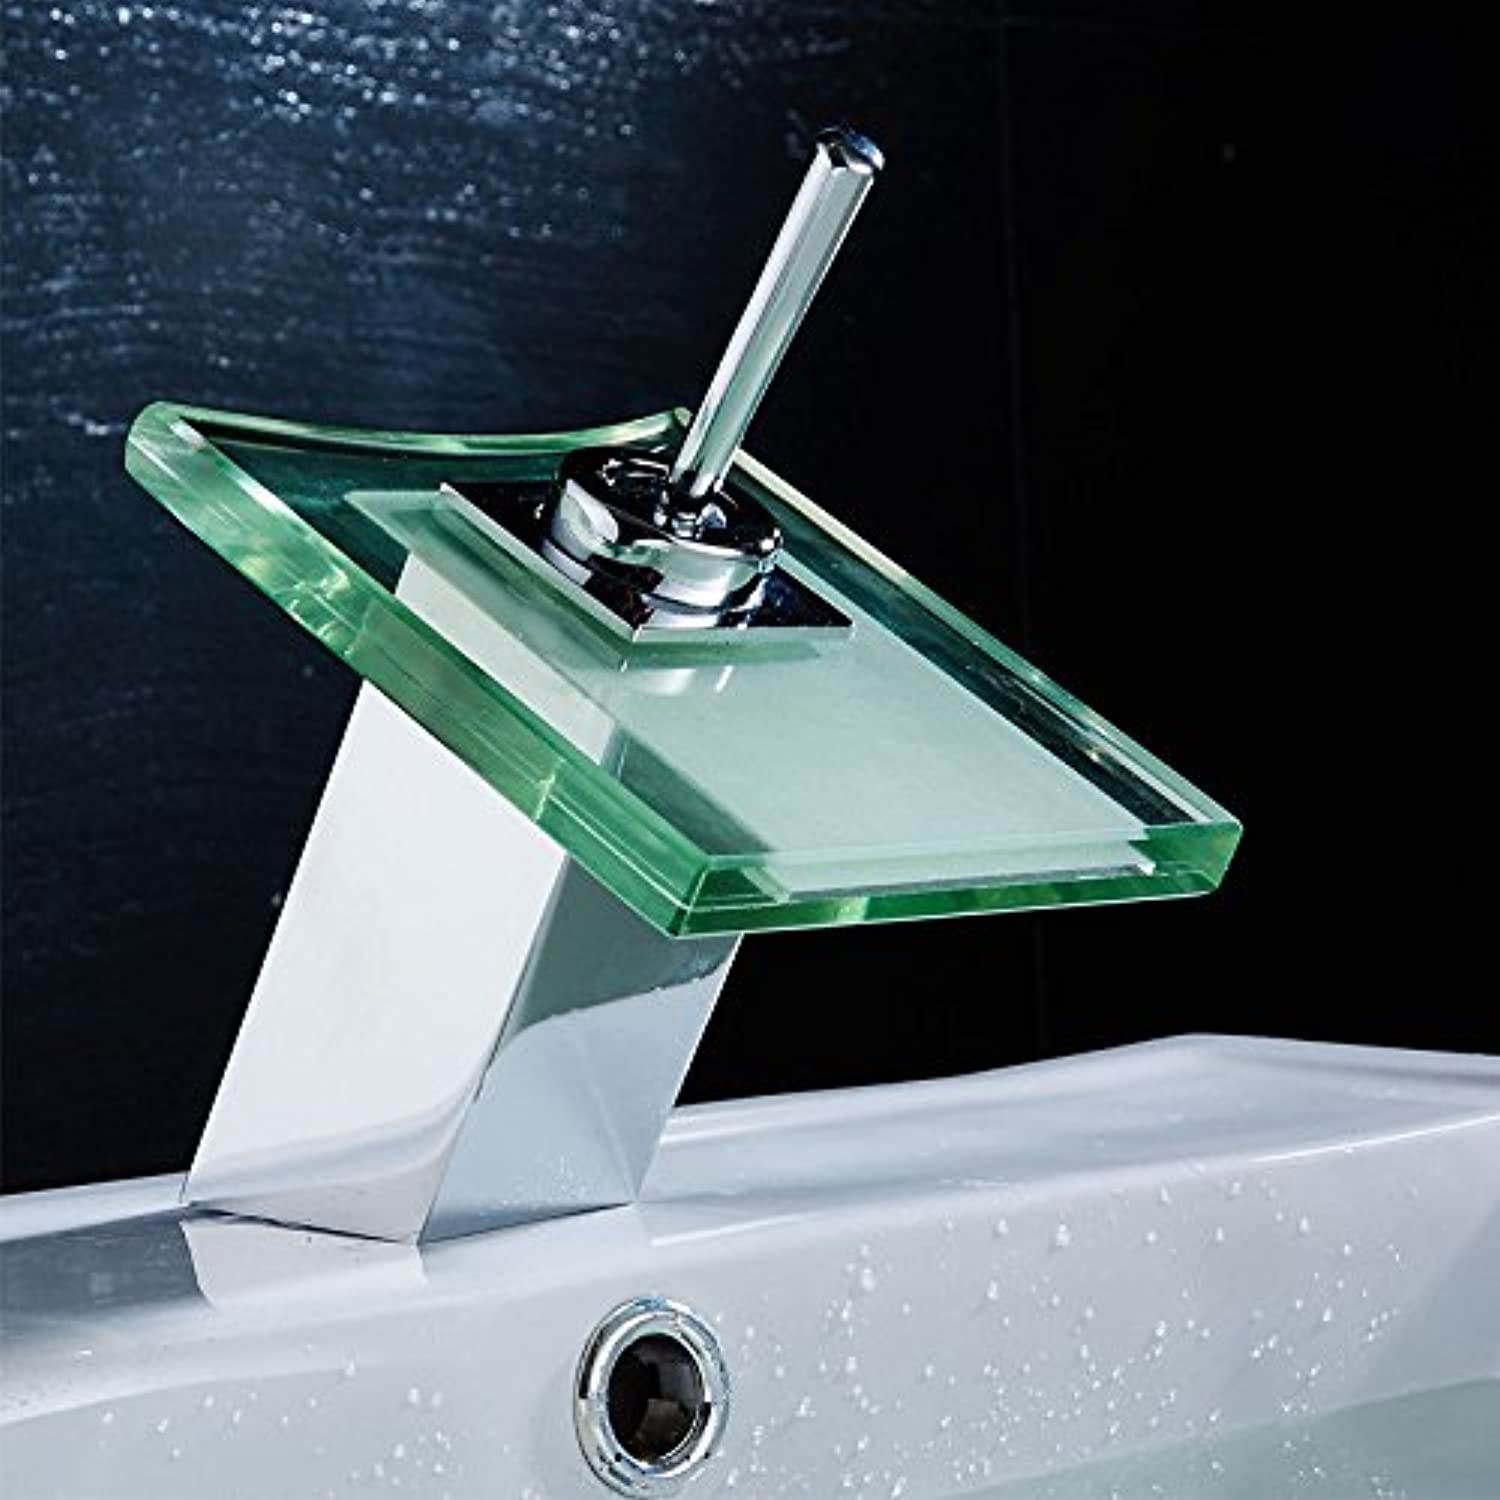 Lalaky Taps Faucet Kitchen Mixer Sink Waterfall Bathroom Mixer Basin Mixer Tap for Kitchen Bathroom and Washroom Waterfall Square Hot and Cold Copper Glass Single Hole